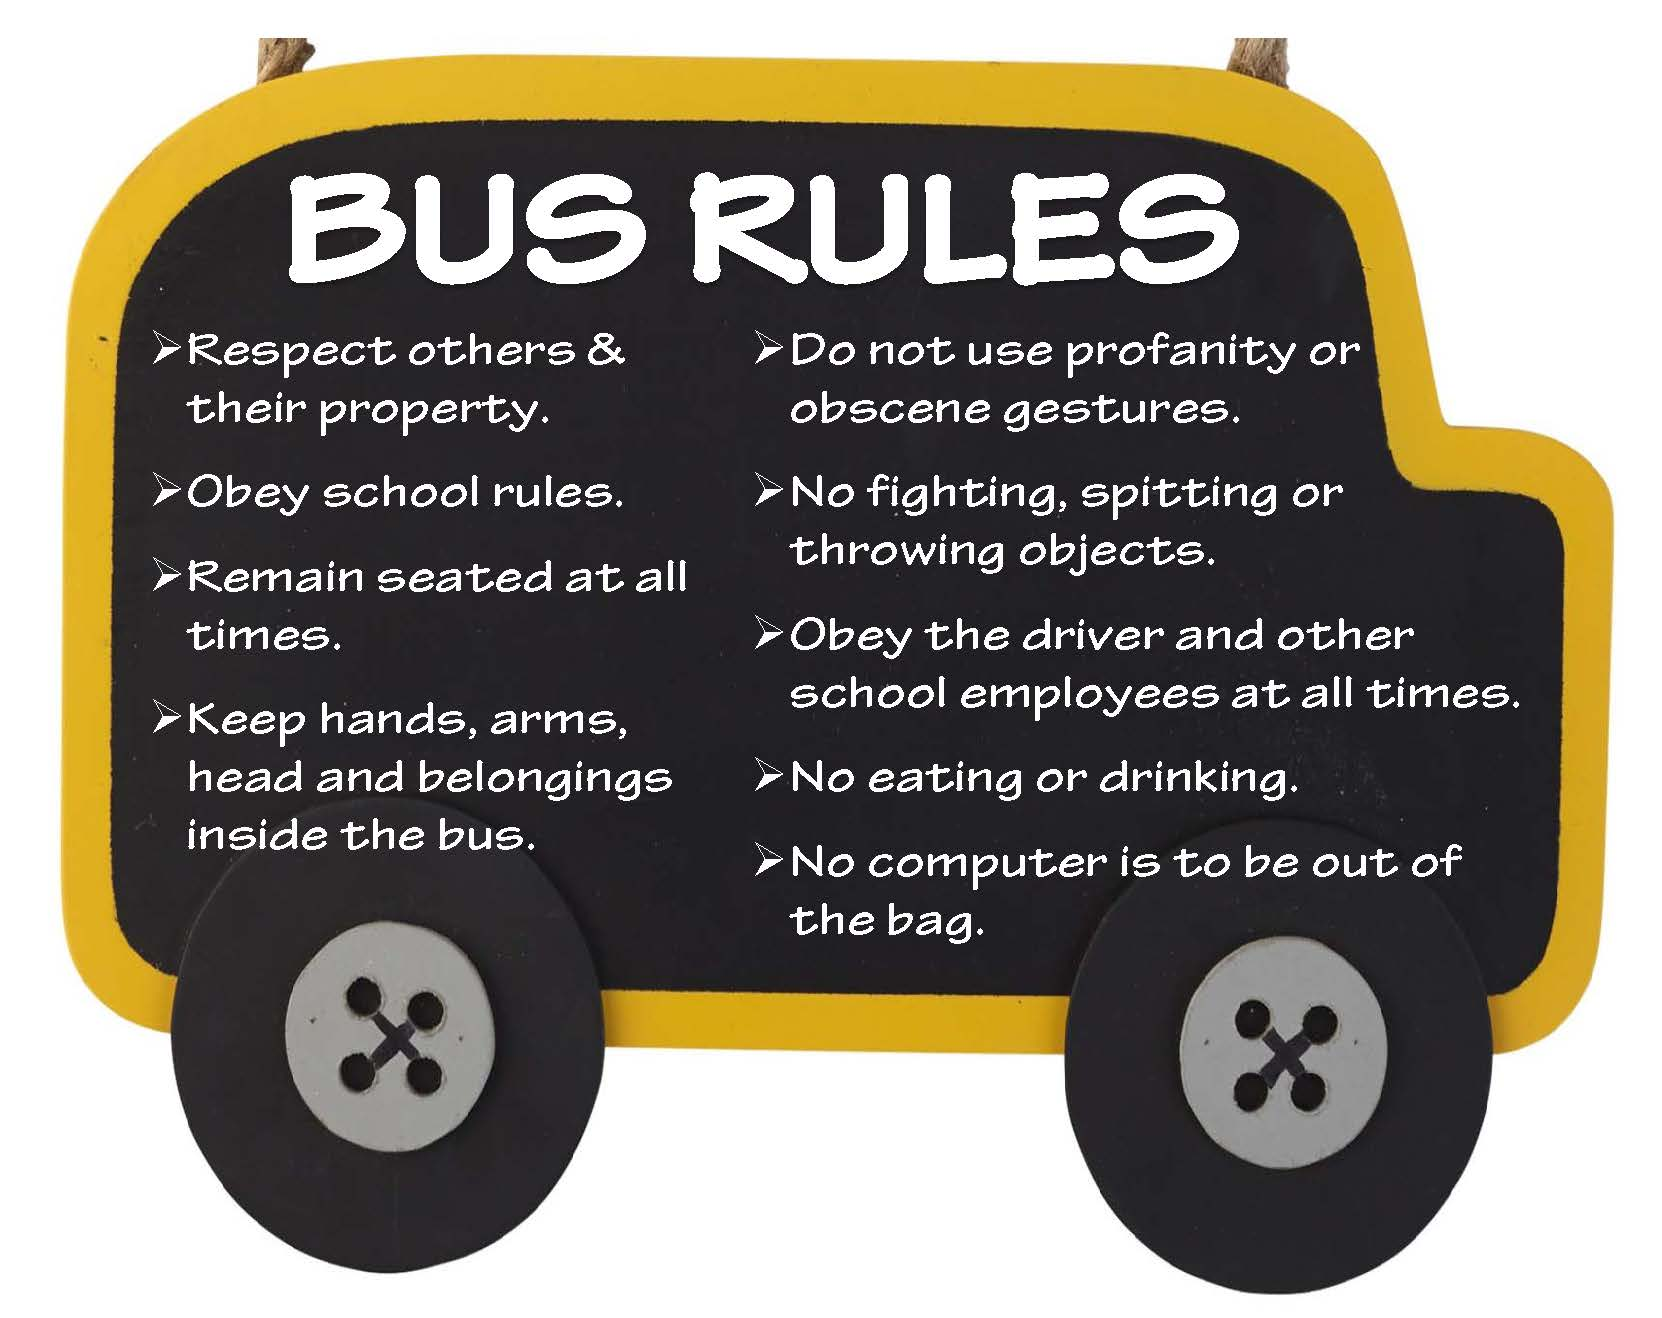 photograph about Printable School Bus Rules titled Transport Departments